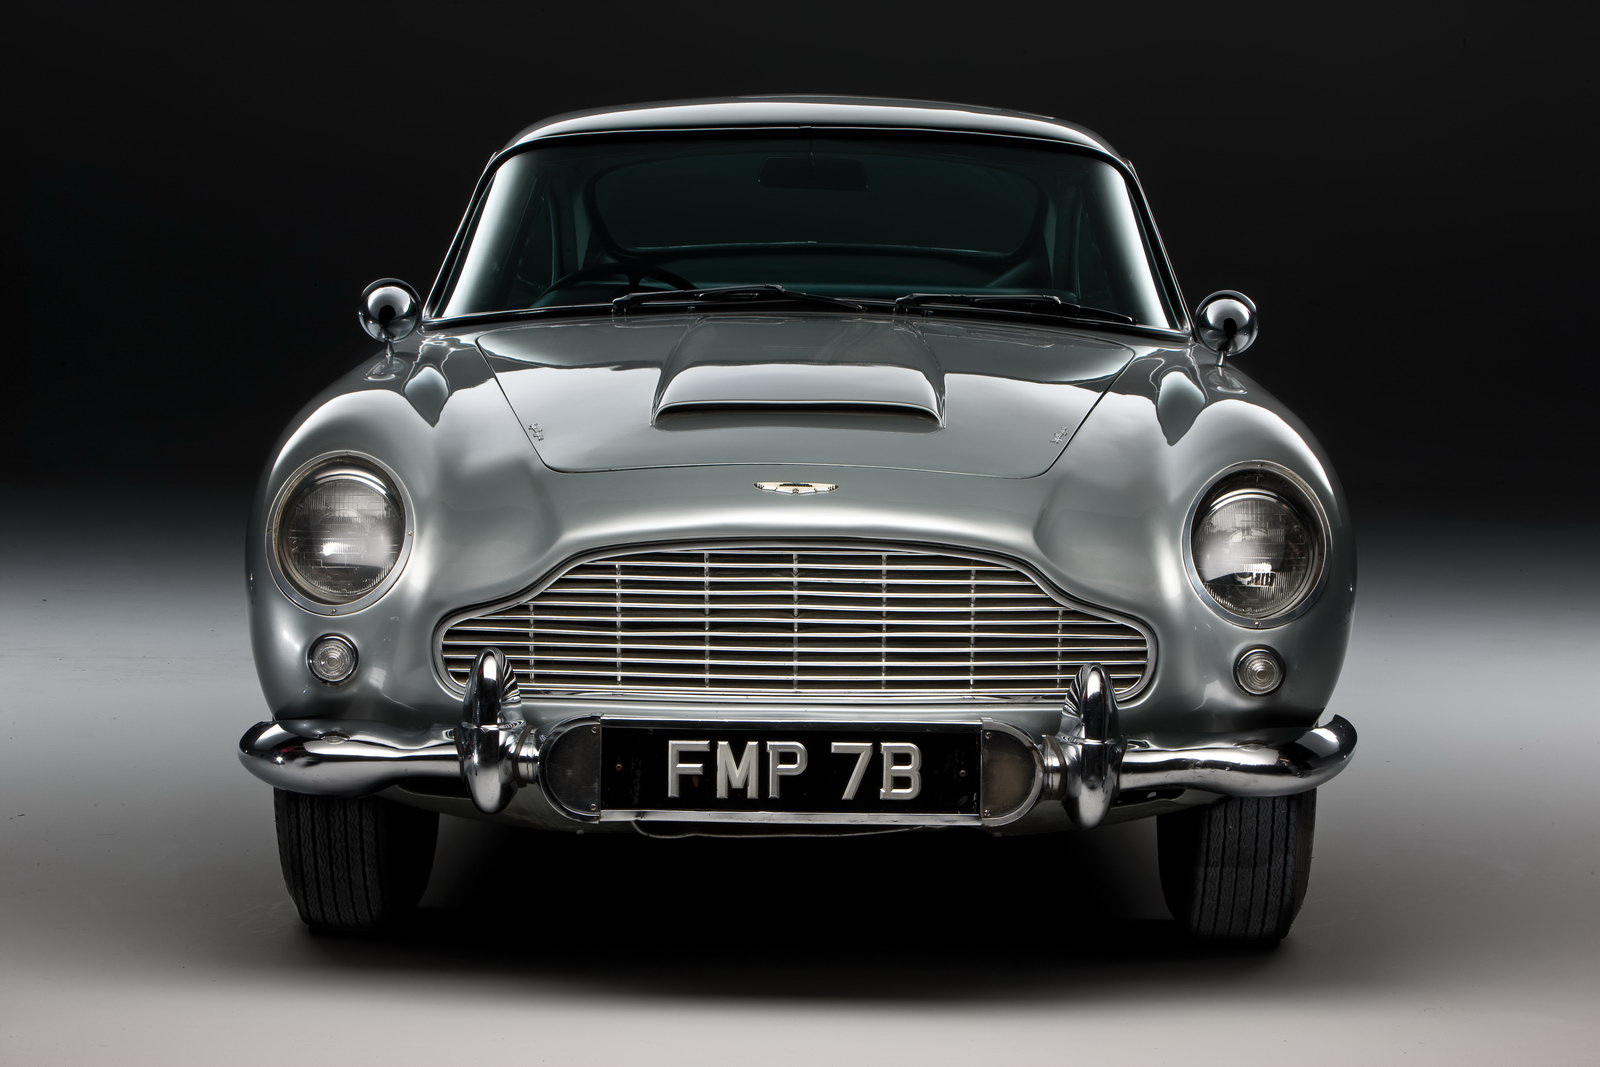 aston martin db6 with James Bond Original Aston Martin Db5 Up on Best 25 Aston Martin Volante Ideas Only On Pinterest Aston 2019 Aston Martin Volante Convertible Review And Release Date 3 additionally De Un Unicornio Fondos moreover Aston Martin Db6 Vantage Shooting Brake By Harold Radford 1965 Wallpapers 216581 1024x768 likewise Aston Martin Vanquish P7hsGCNRbsvAyLYmKEPj1 BykDHI 57fPc144VotYc moreover Aston Martin DB6 43713.